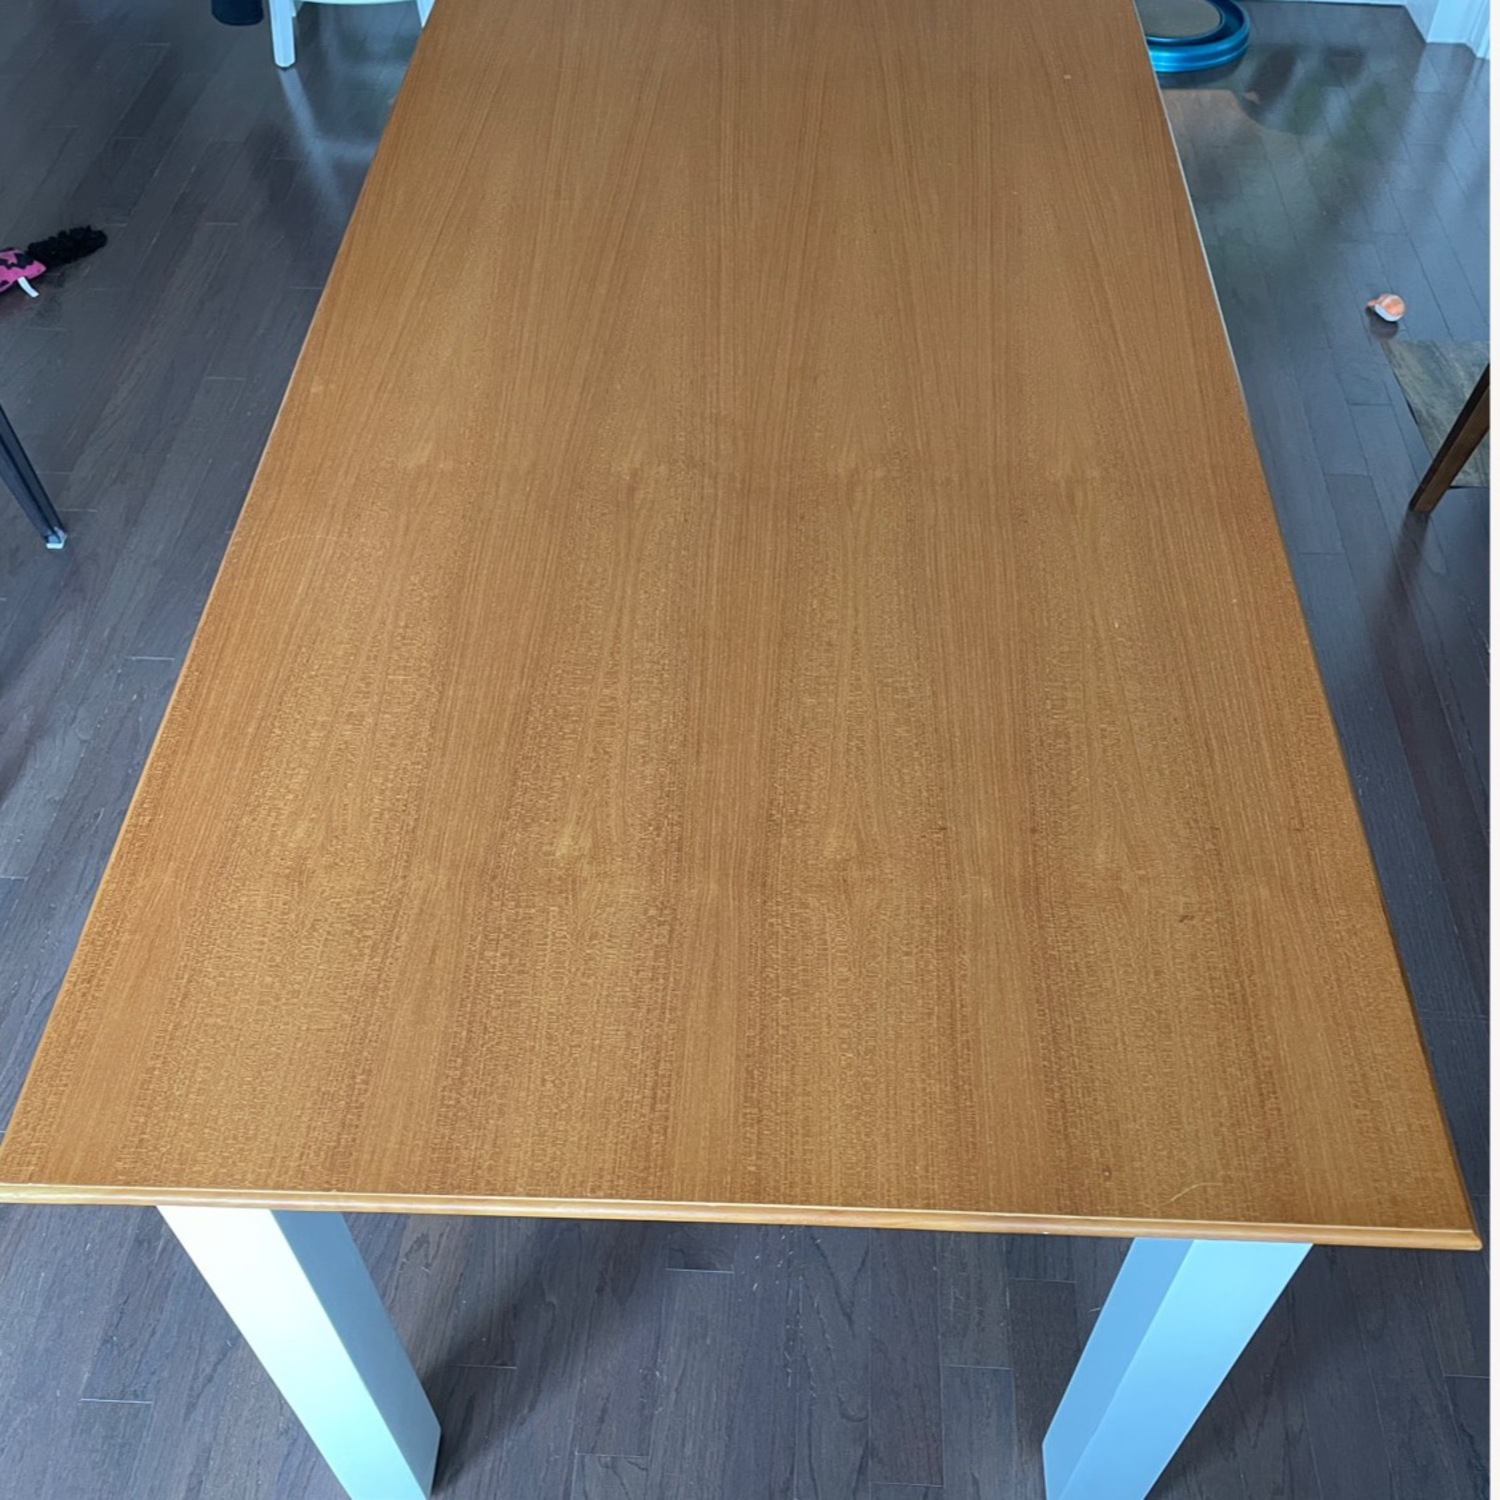 Solid Wood Dining Table 70' - EU import - image-12